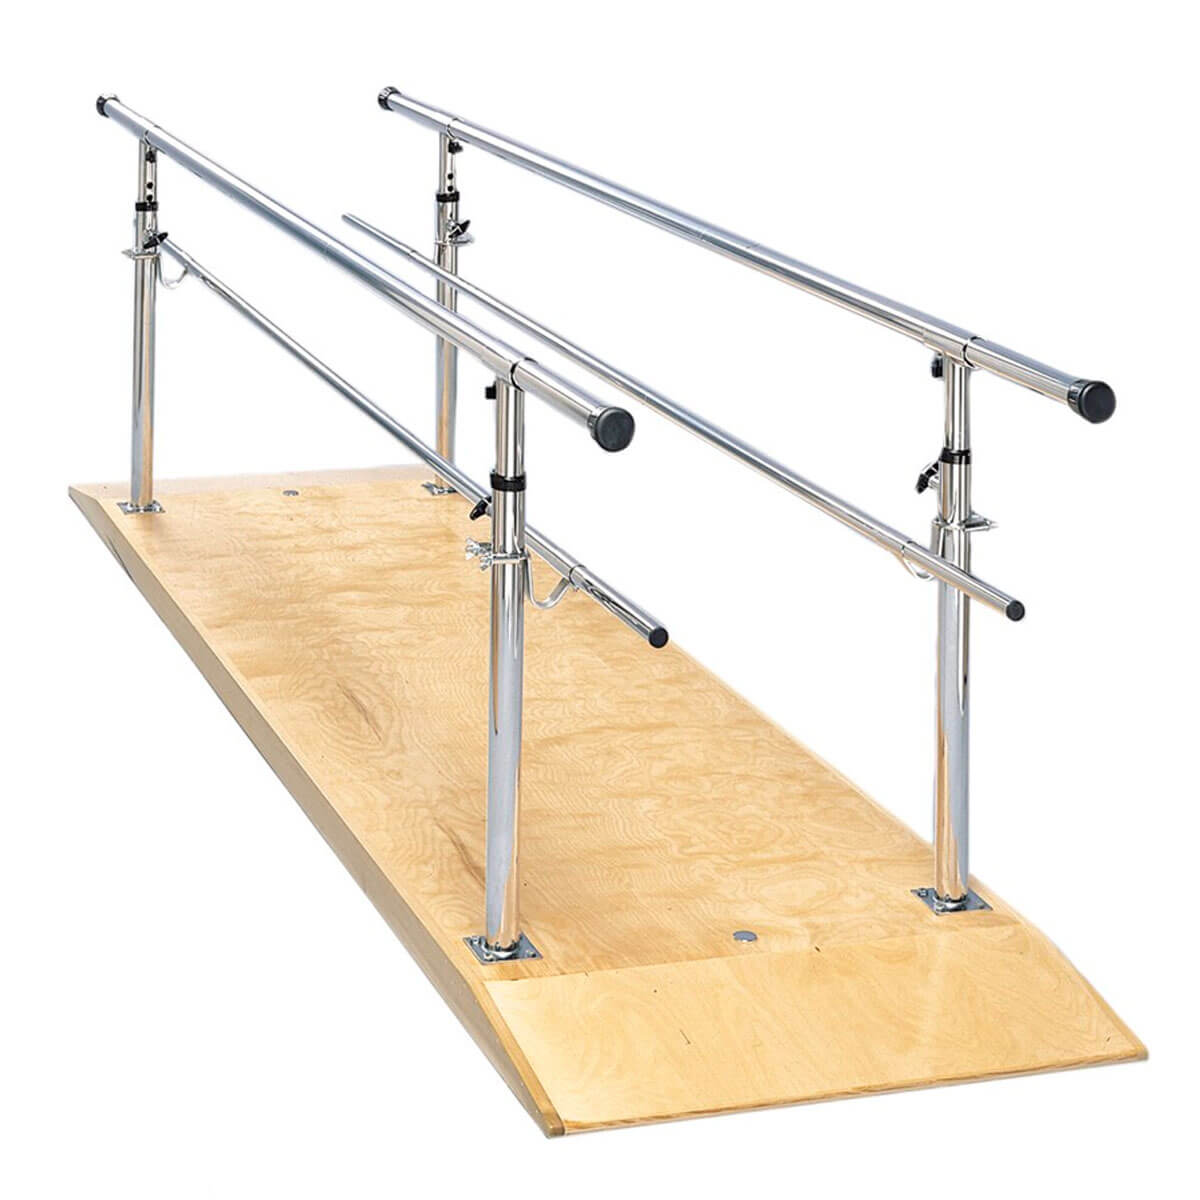 Platform Mounted Parallel Bars with Wood Platform and Adjustable Height (26